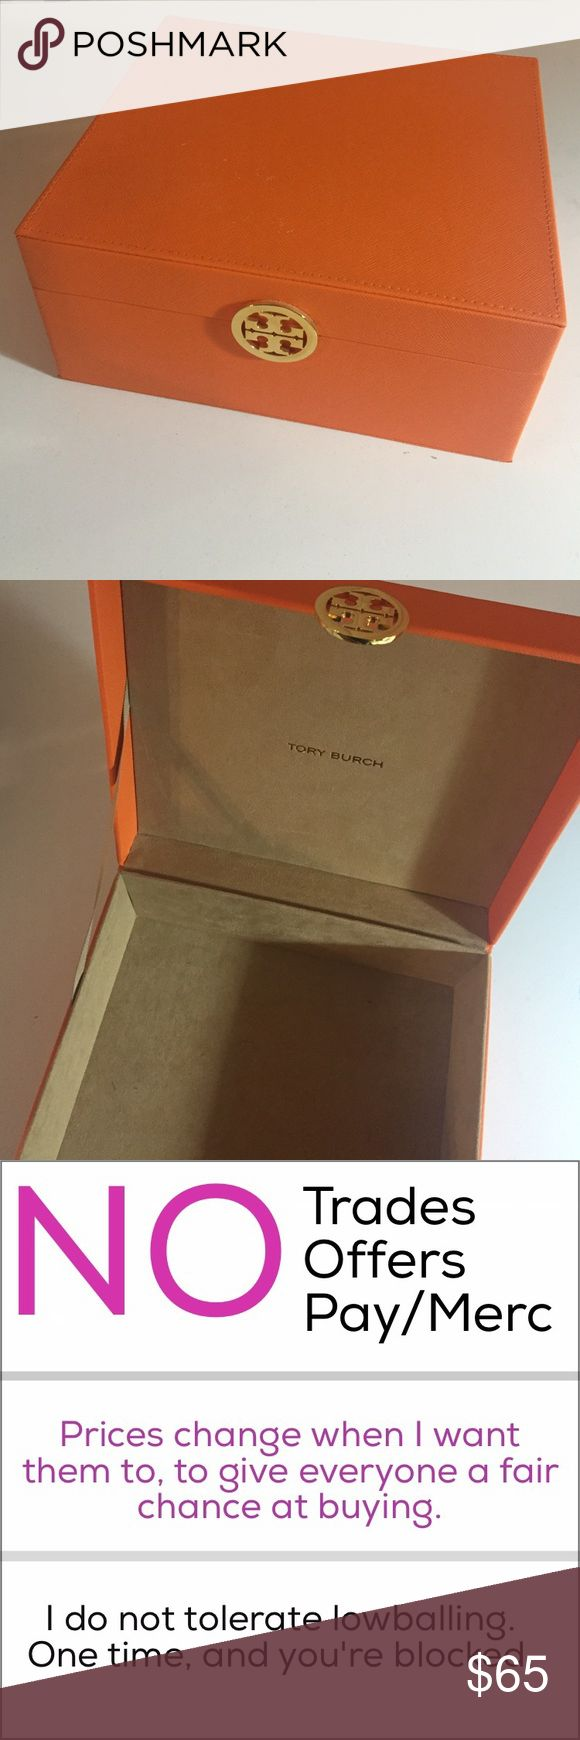 Tory Burch Orange Box w Logo EUC - 9 inches wide x 9 inches long x 4 inches tall - sturdy box with gold toned logo (metal) and tan suede interior and gold logo inside of the top lid. Lid is attached to the bottom and also has a tan ribbon stop. Exterior is a bright orange saffiano leather (Tory's signature orange color). Was used as a jewelry box and has very very faint markings inside and a few white marks on the exterior. NO TRADES NO OFFERS NO PAY/MERC Tory Burch Jewelry